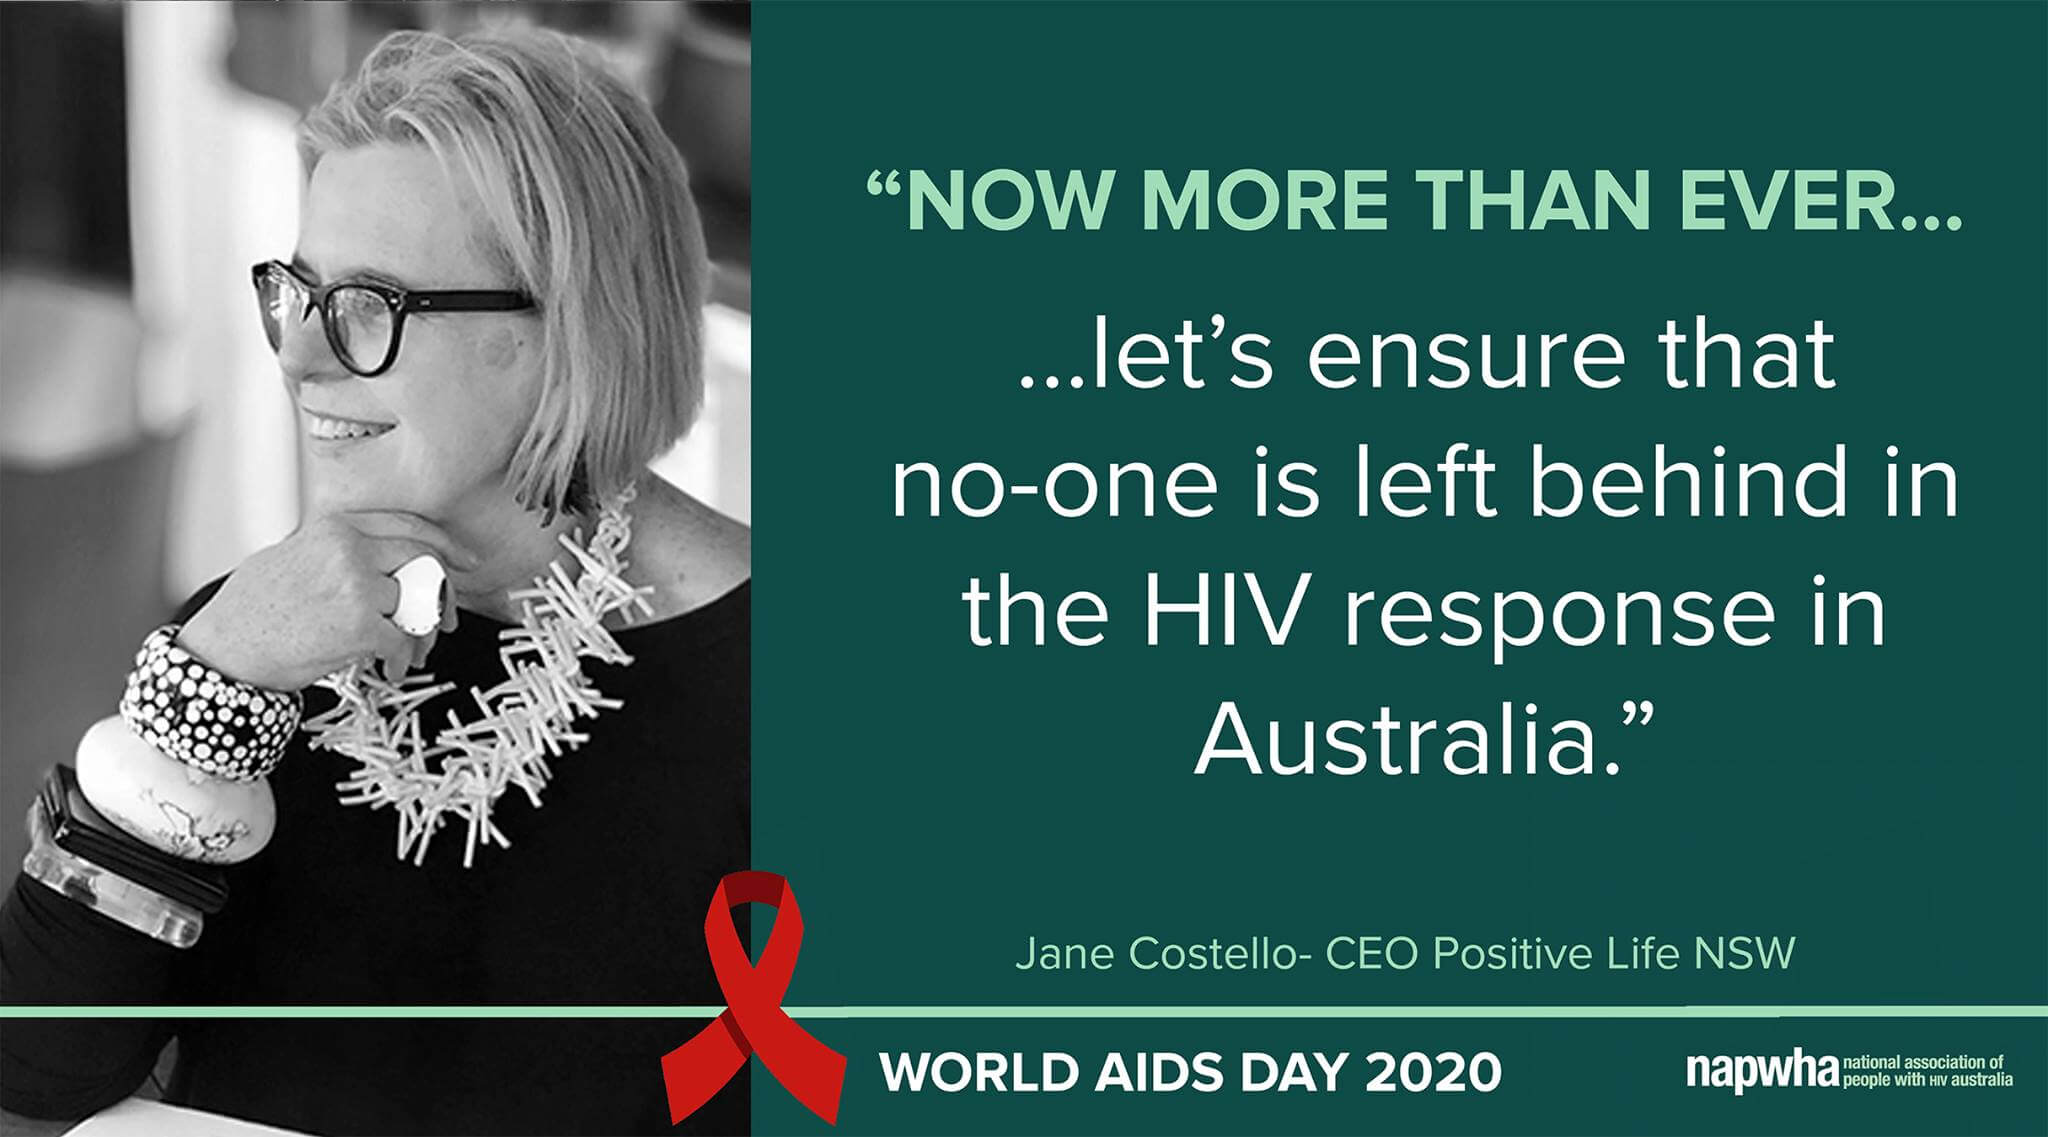 Jane Costello, CEO of Positive Life NSW provides a World AIDS Day 2020 message